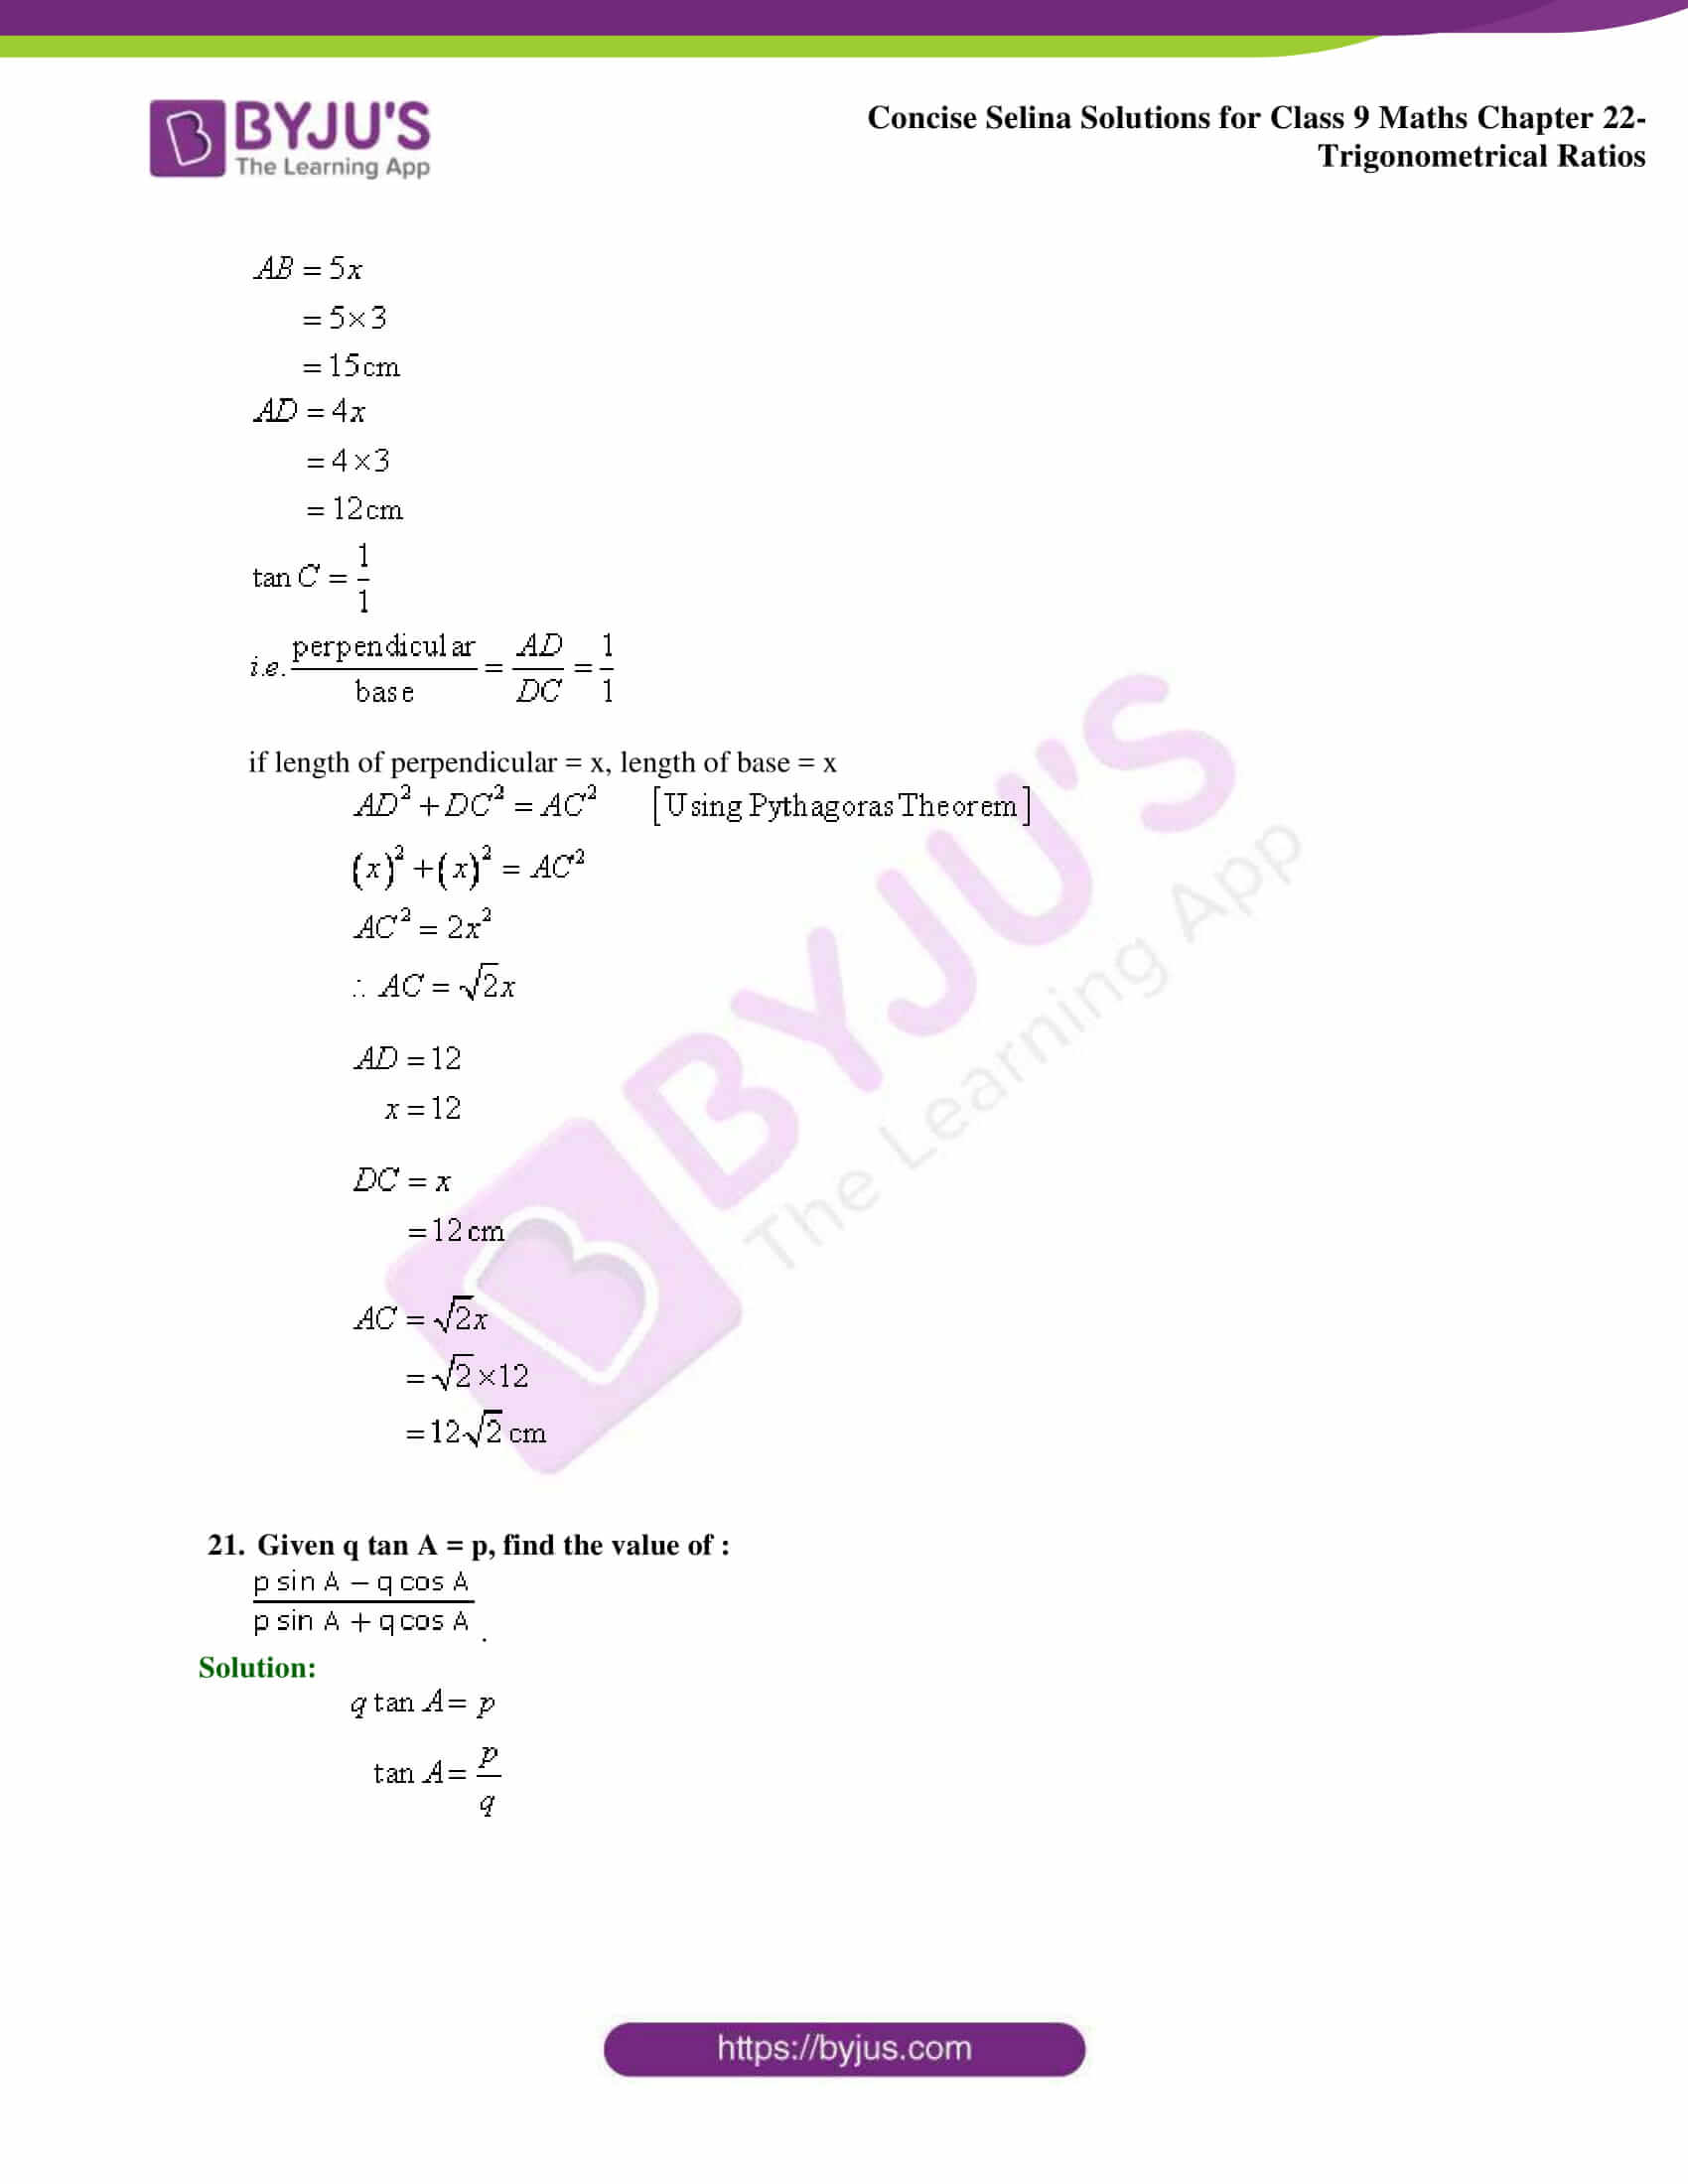 Concise Selina Solutions Class 9 Maths Chapter 22 Trigonometrical Ratios part 42